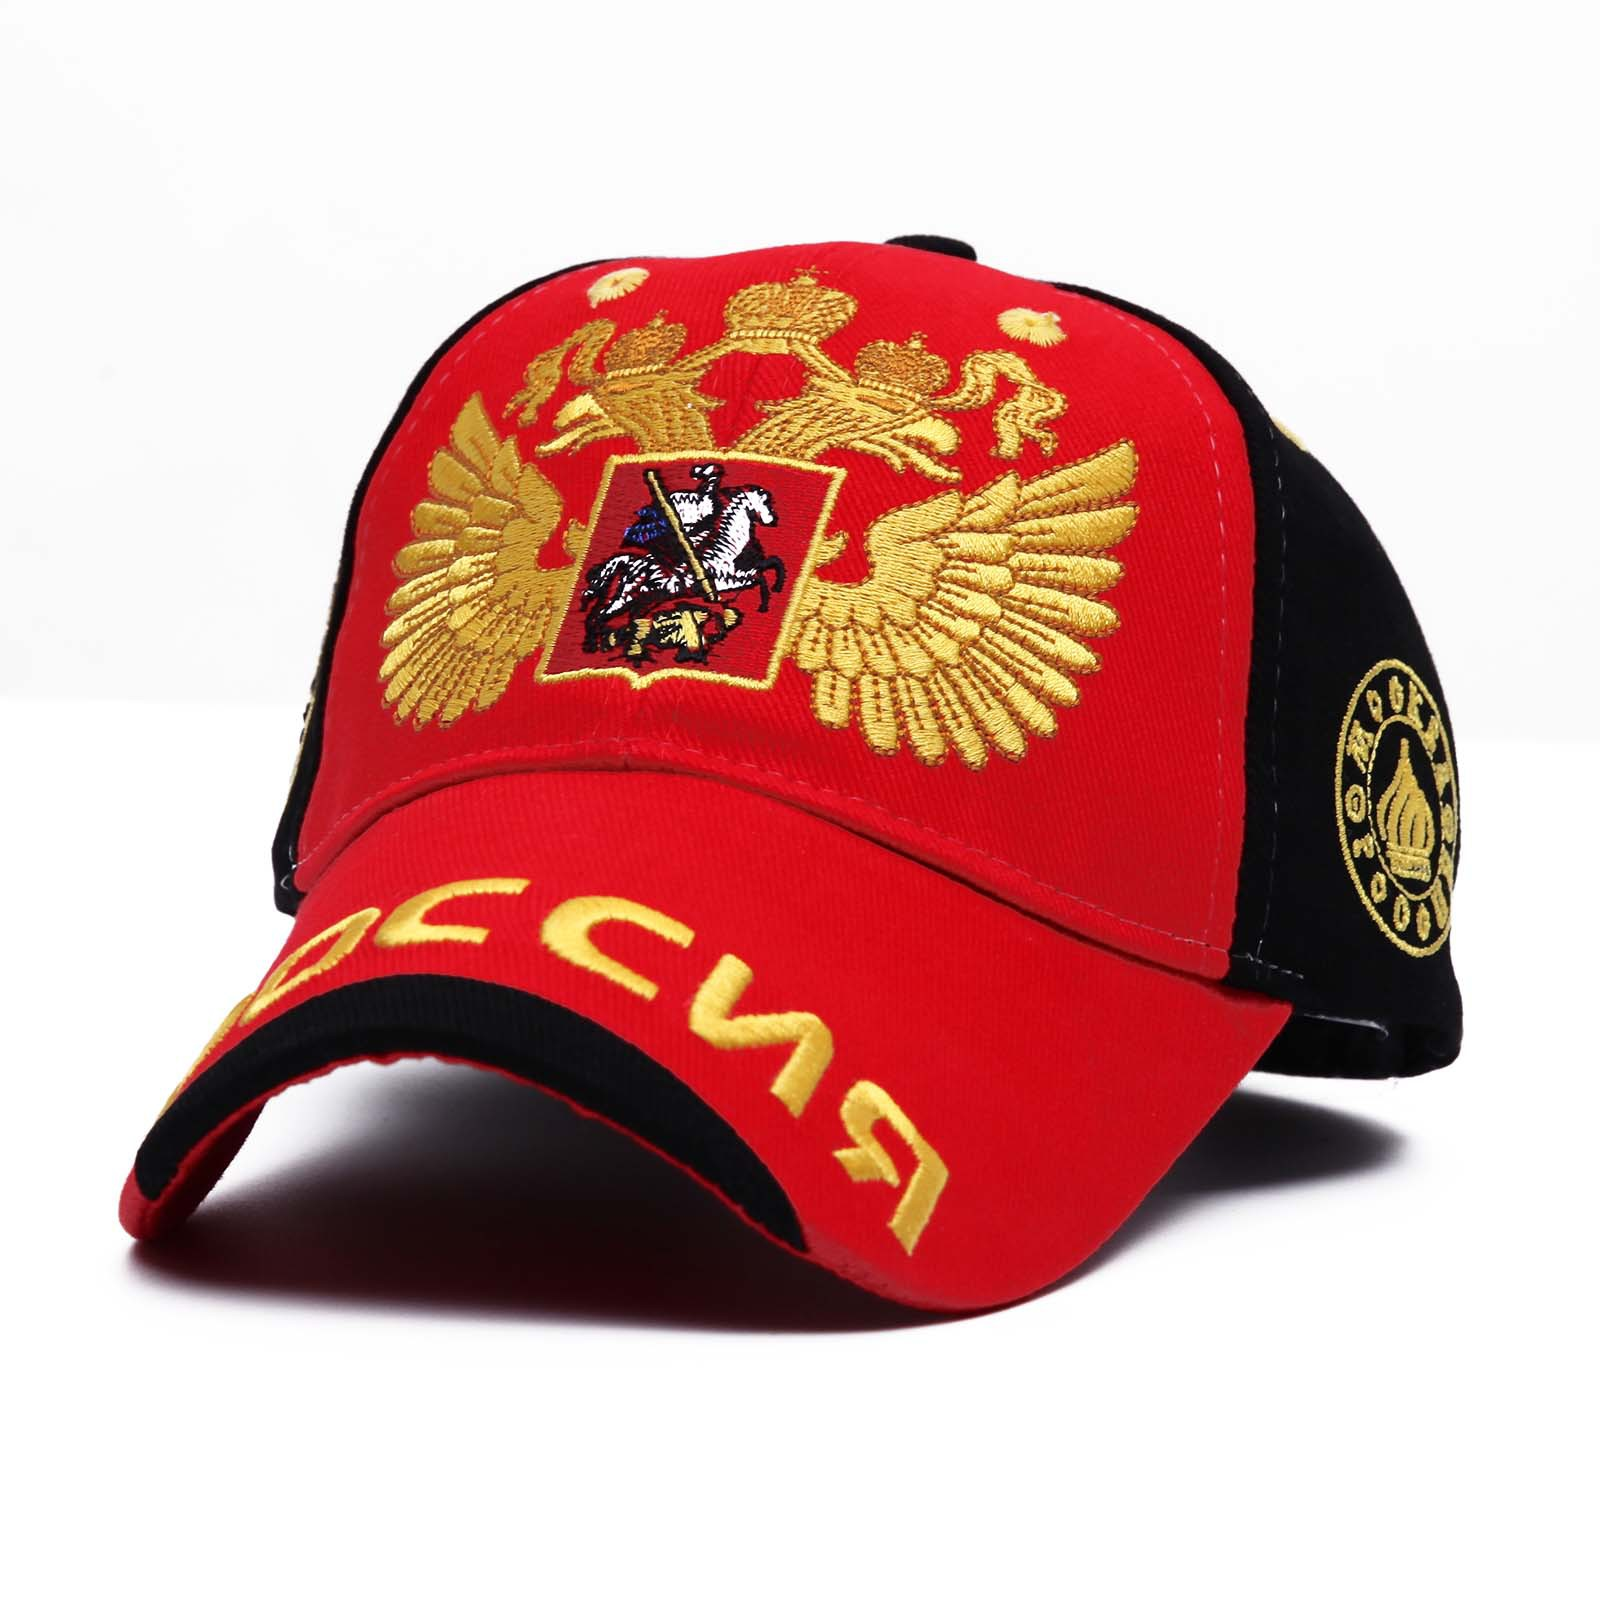 2019 Women Men Fashion Embroidery Baseball Cap Russia National Emblem Cotton Outdoor Leisure Sports Sun Hat Snapback Dad Hats in Men 39 s Baseball Caps from Apparel Accessories